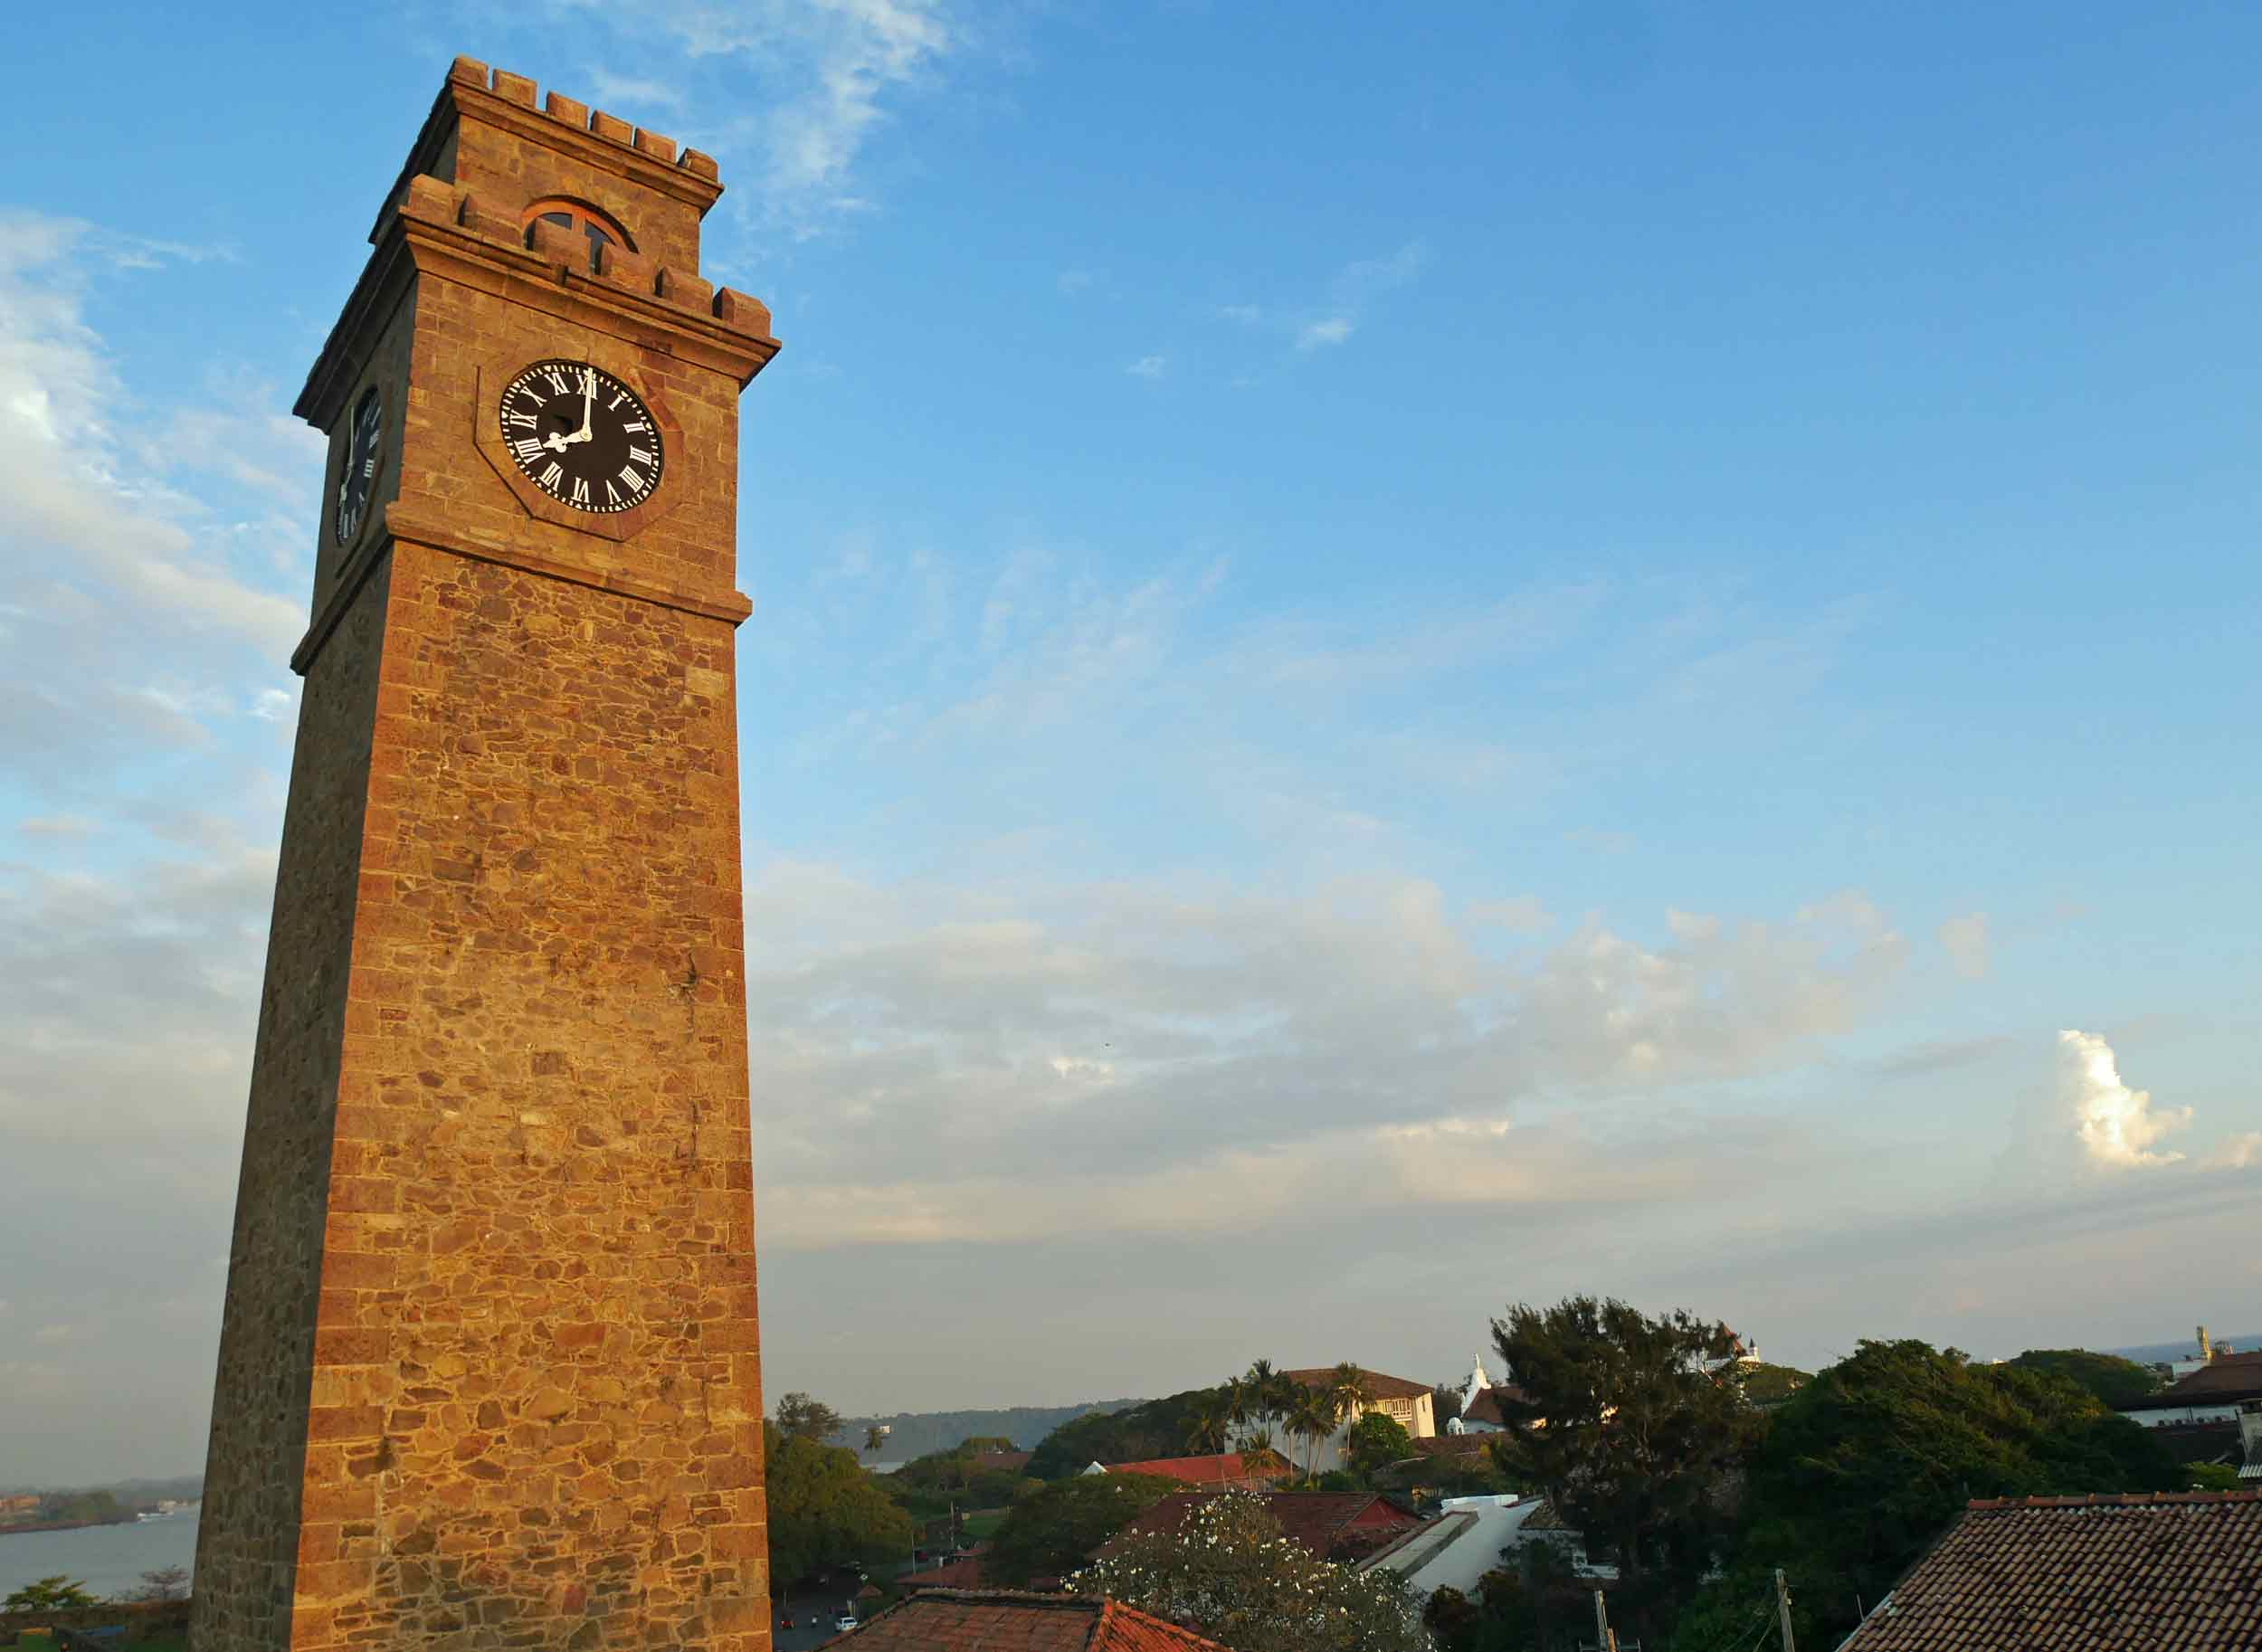 The golden hour was soon upon us in Galle, and this clock tower was begging to be photographed!